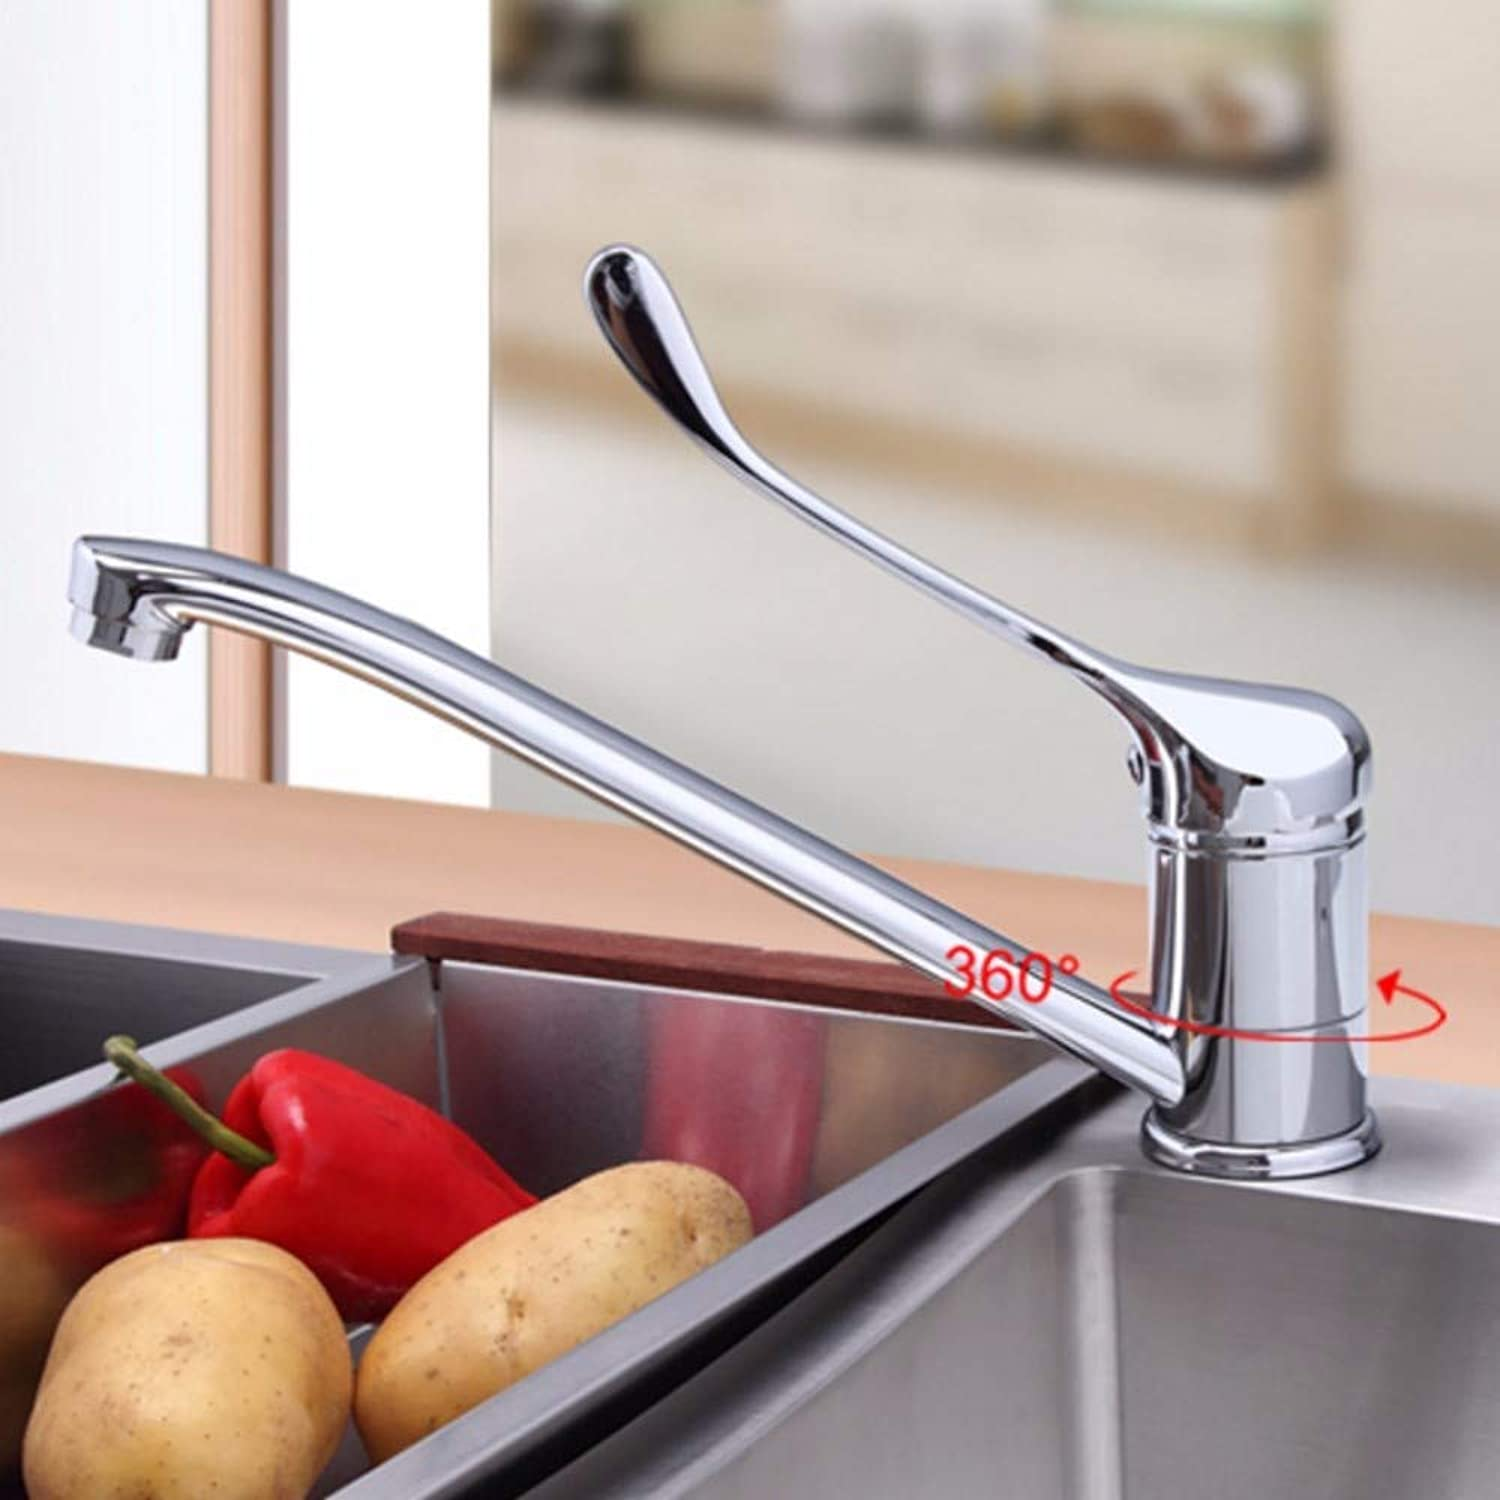 Faucet Kitchen Faucet Cold and Hot Water Mixer Chrome Tap Super Long Single Handle